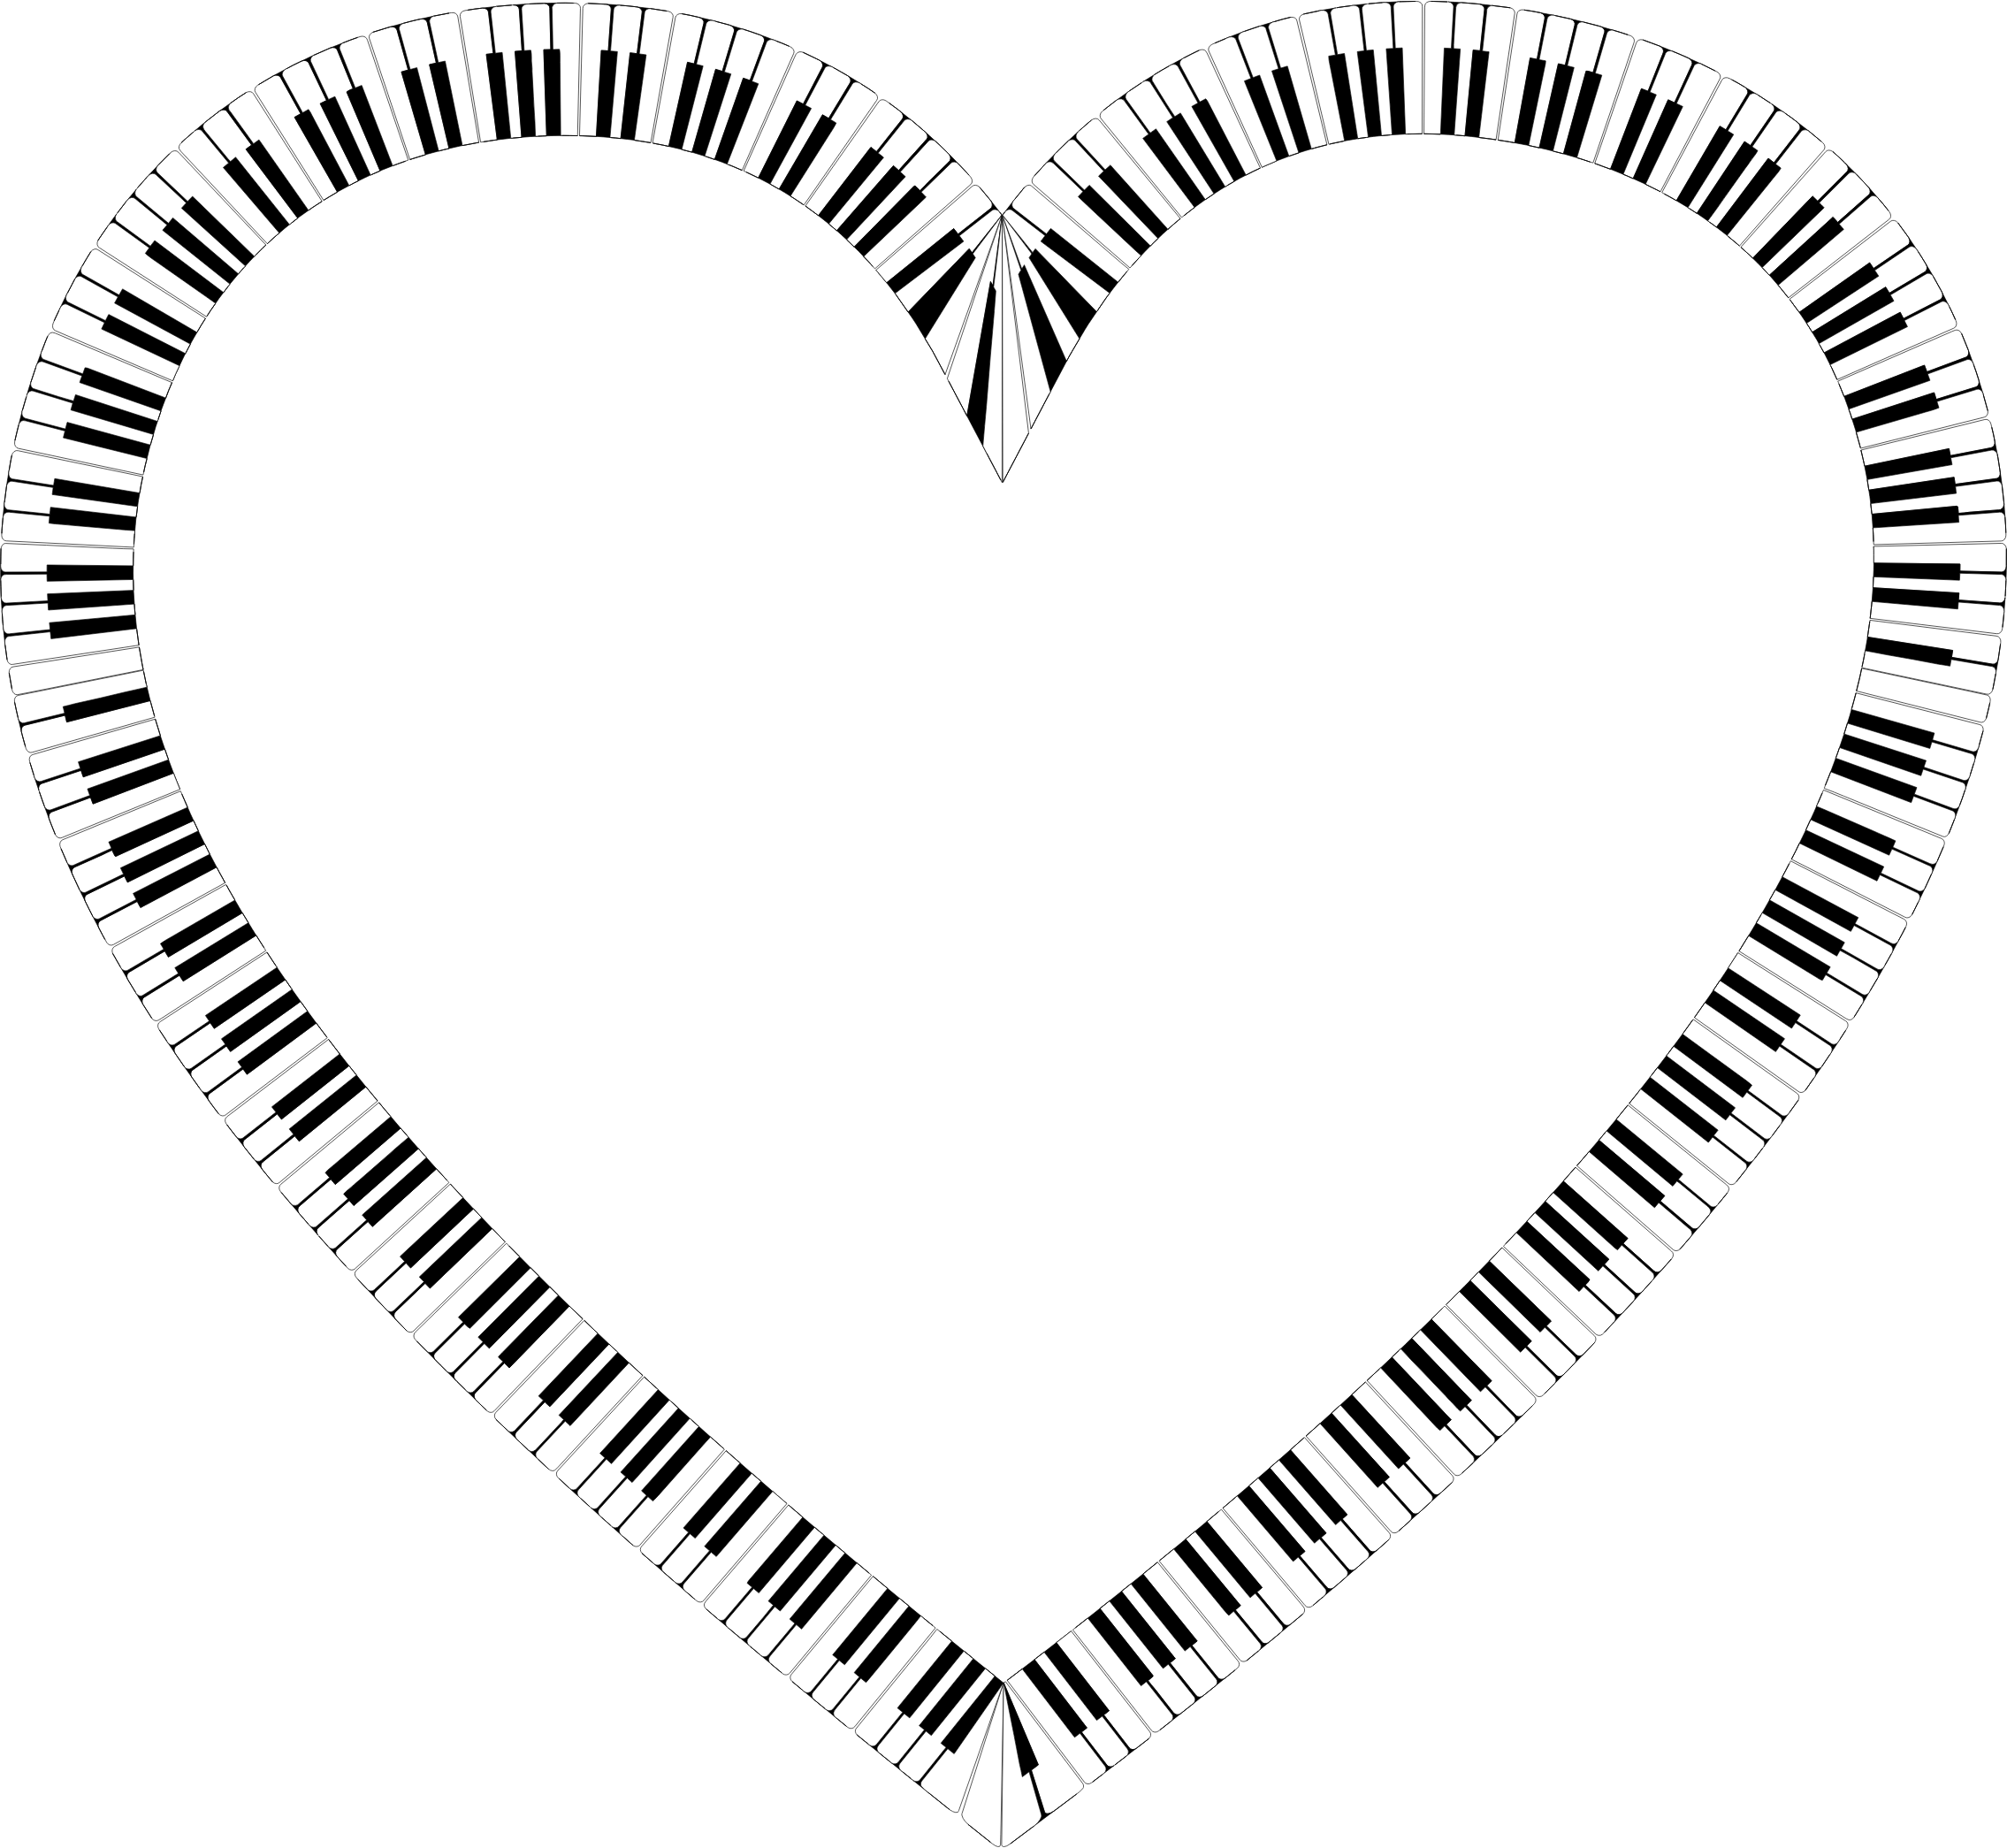 Hearts clipart key. Piano keys heart big